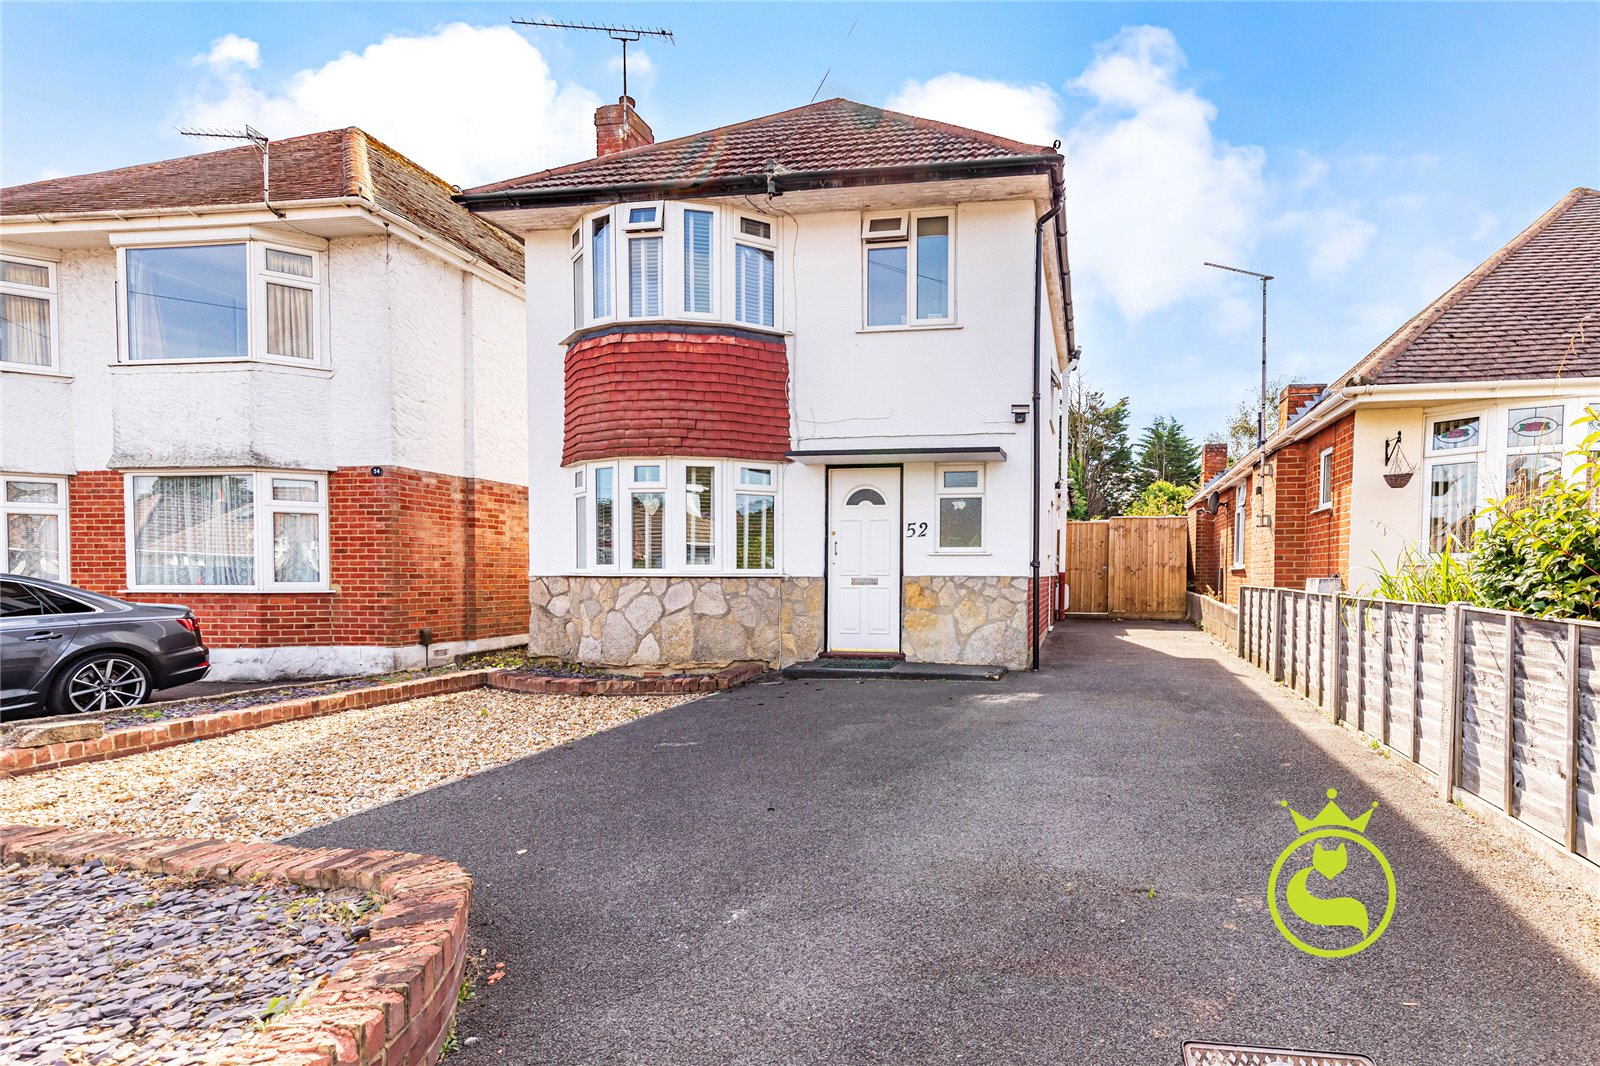 3 bed house for sale in Beresford Road, Parkstone, BH12